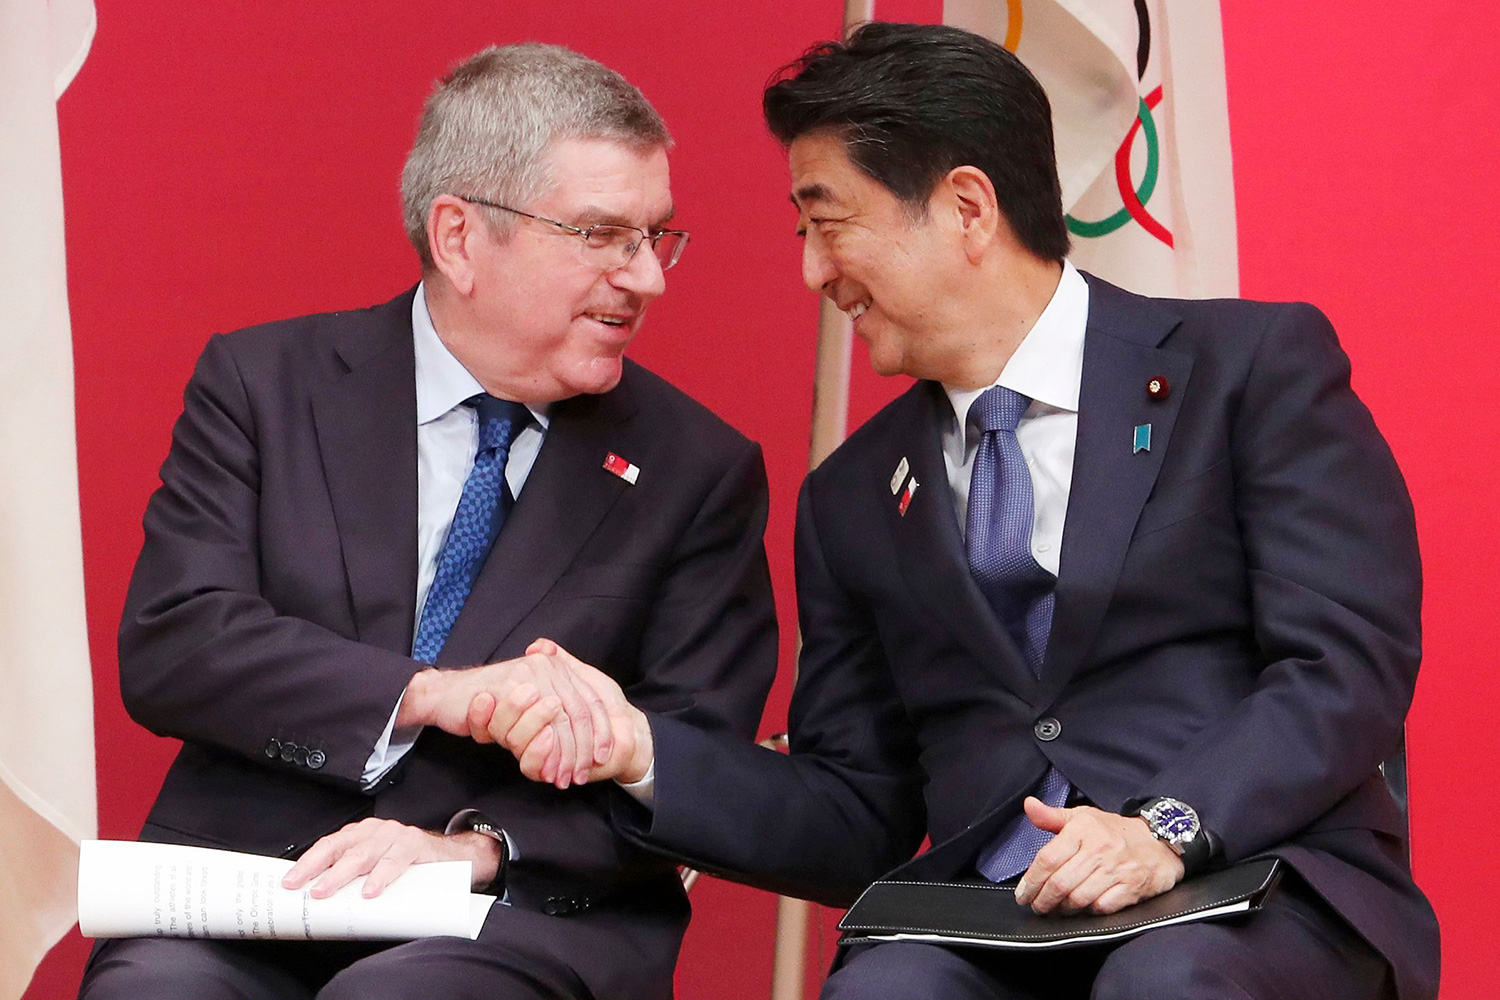 International Olympic Committee (IOC) President Thomas Bach and Japanese Prime Minister Shinzo Abe